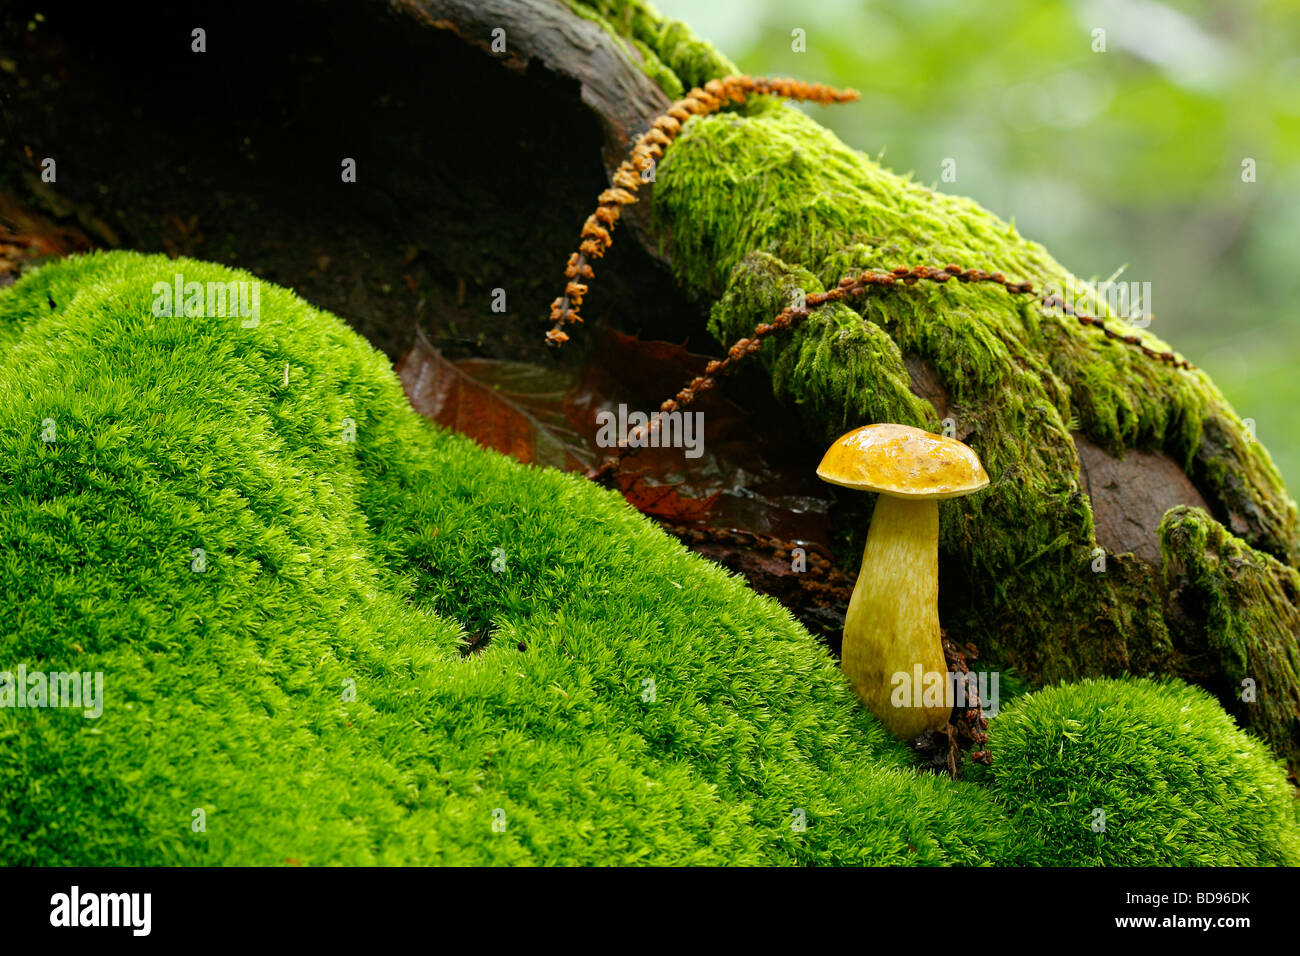 Mushroom and moss on the trunk Asturias Spain - Stock Image